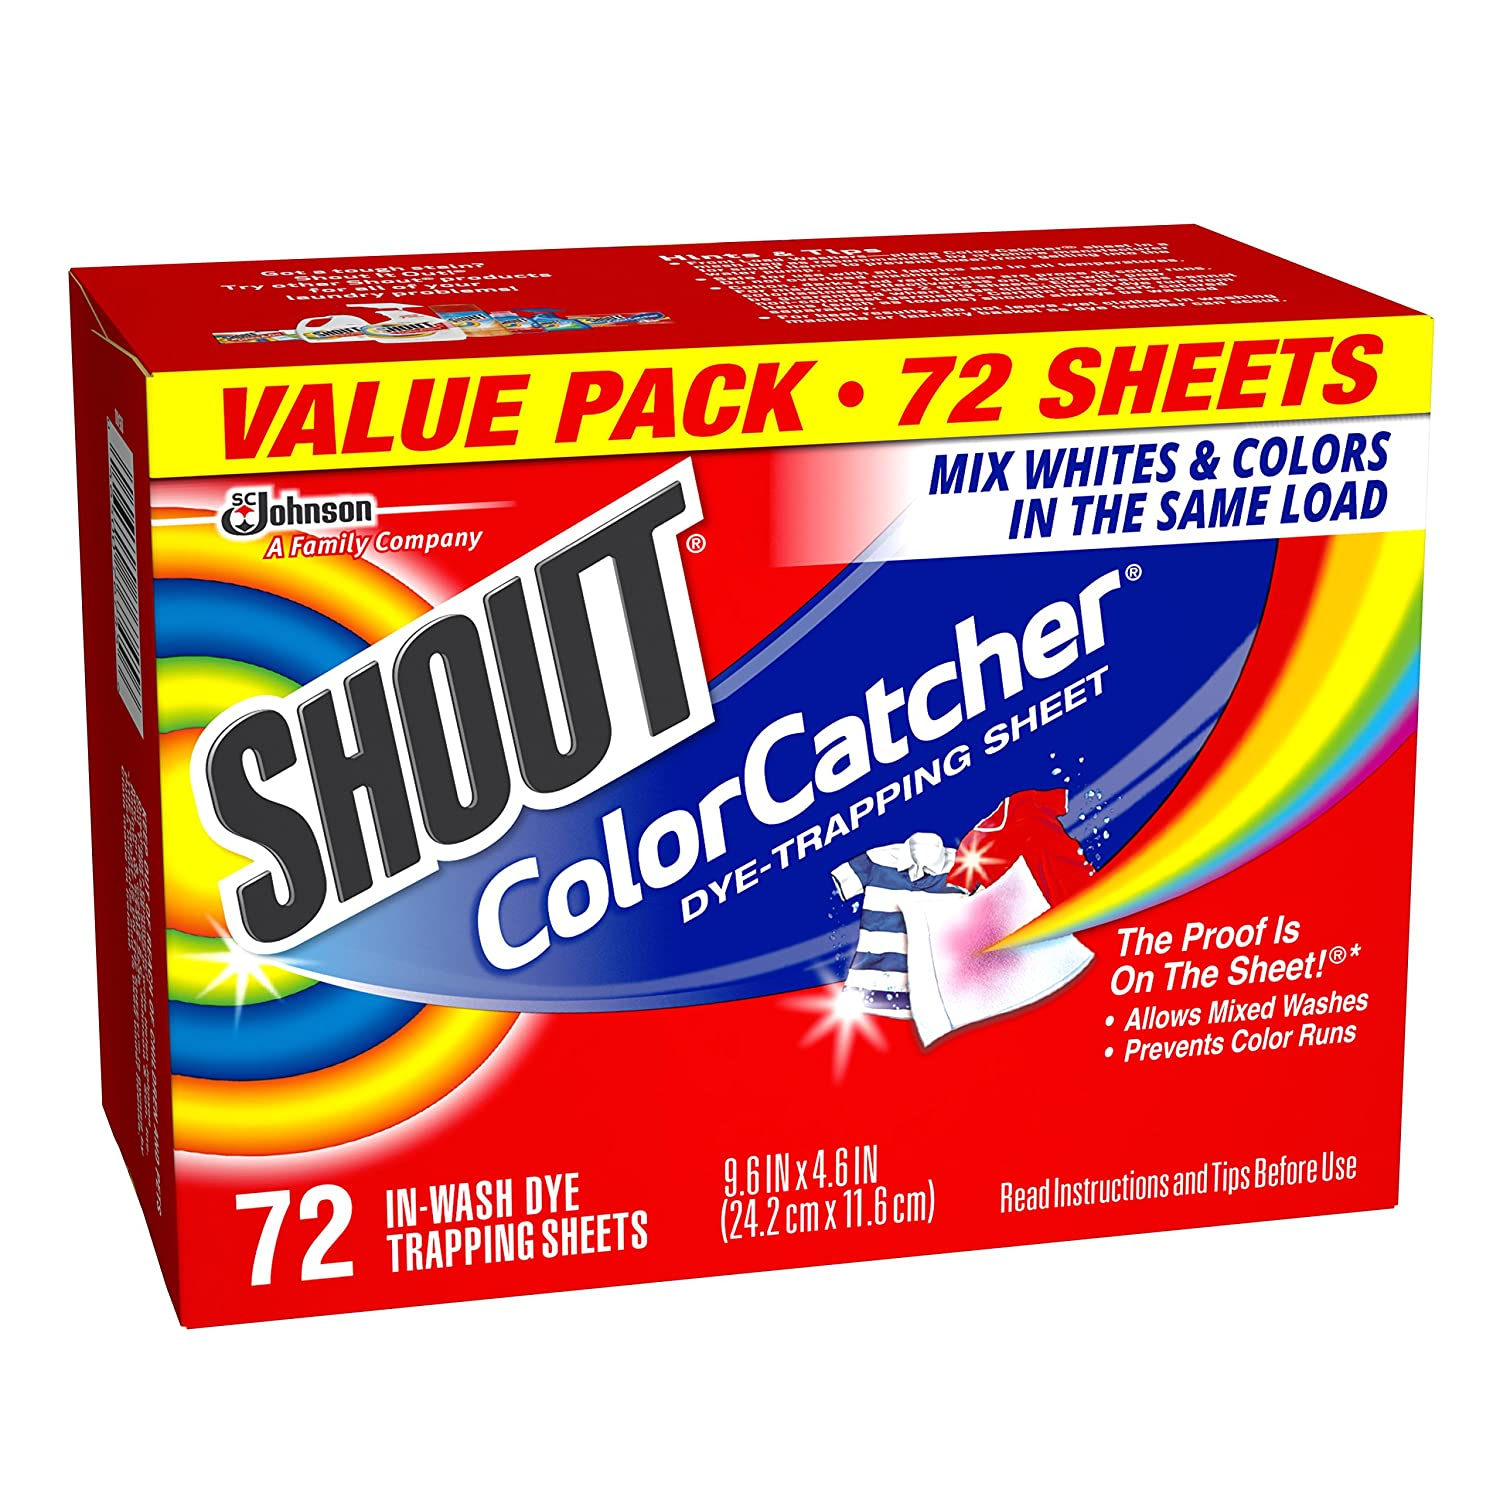 Colour catcher sheets - Amazon Com Shout Color Catcher Dye Trapping Sheets 72 0 Count Health Personal Care